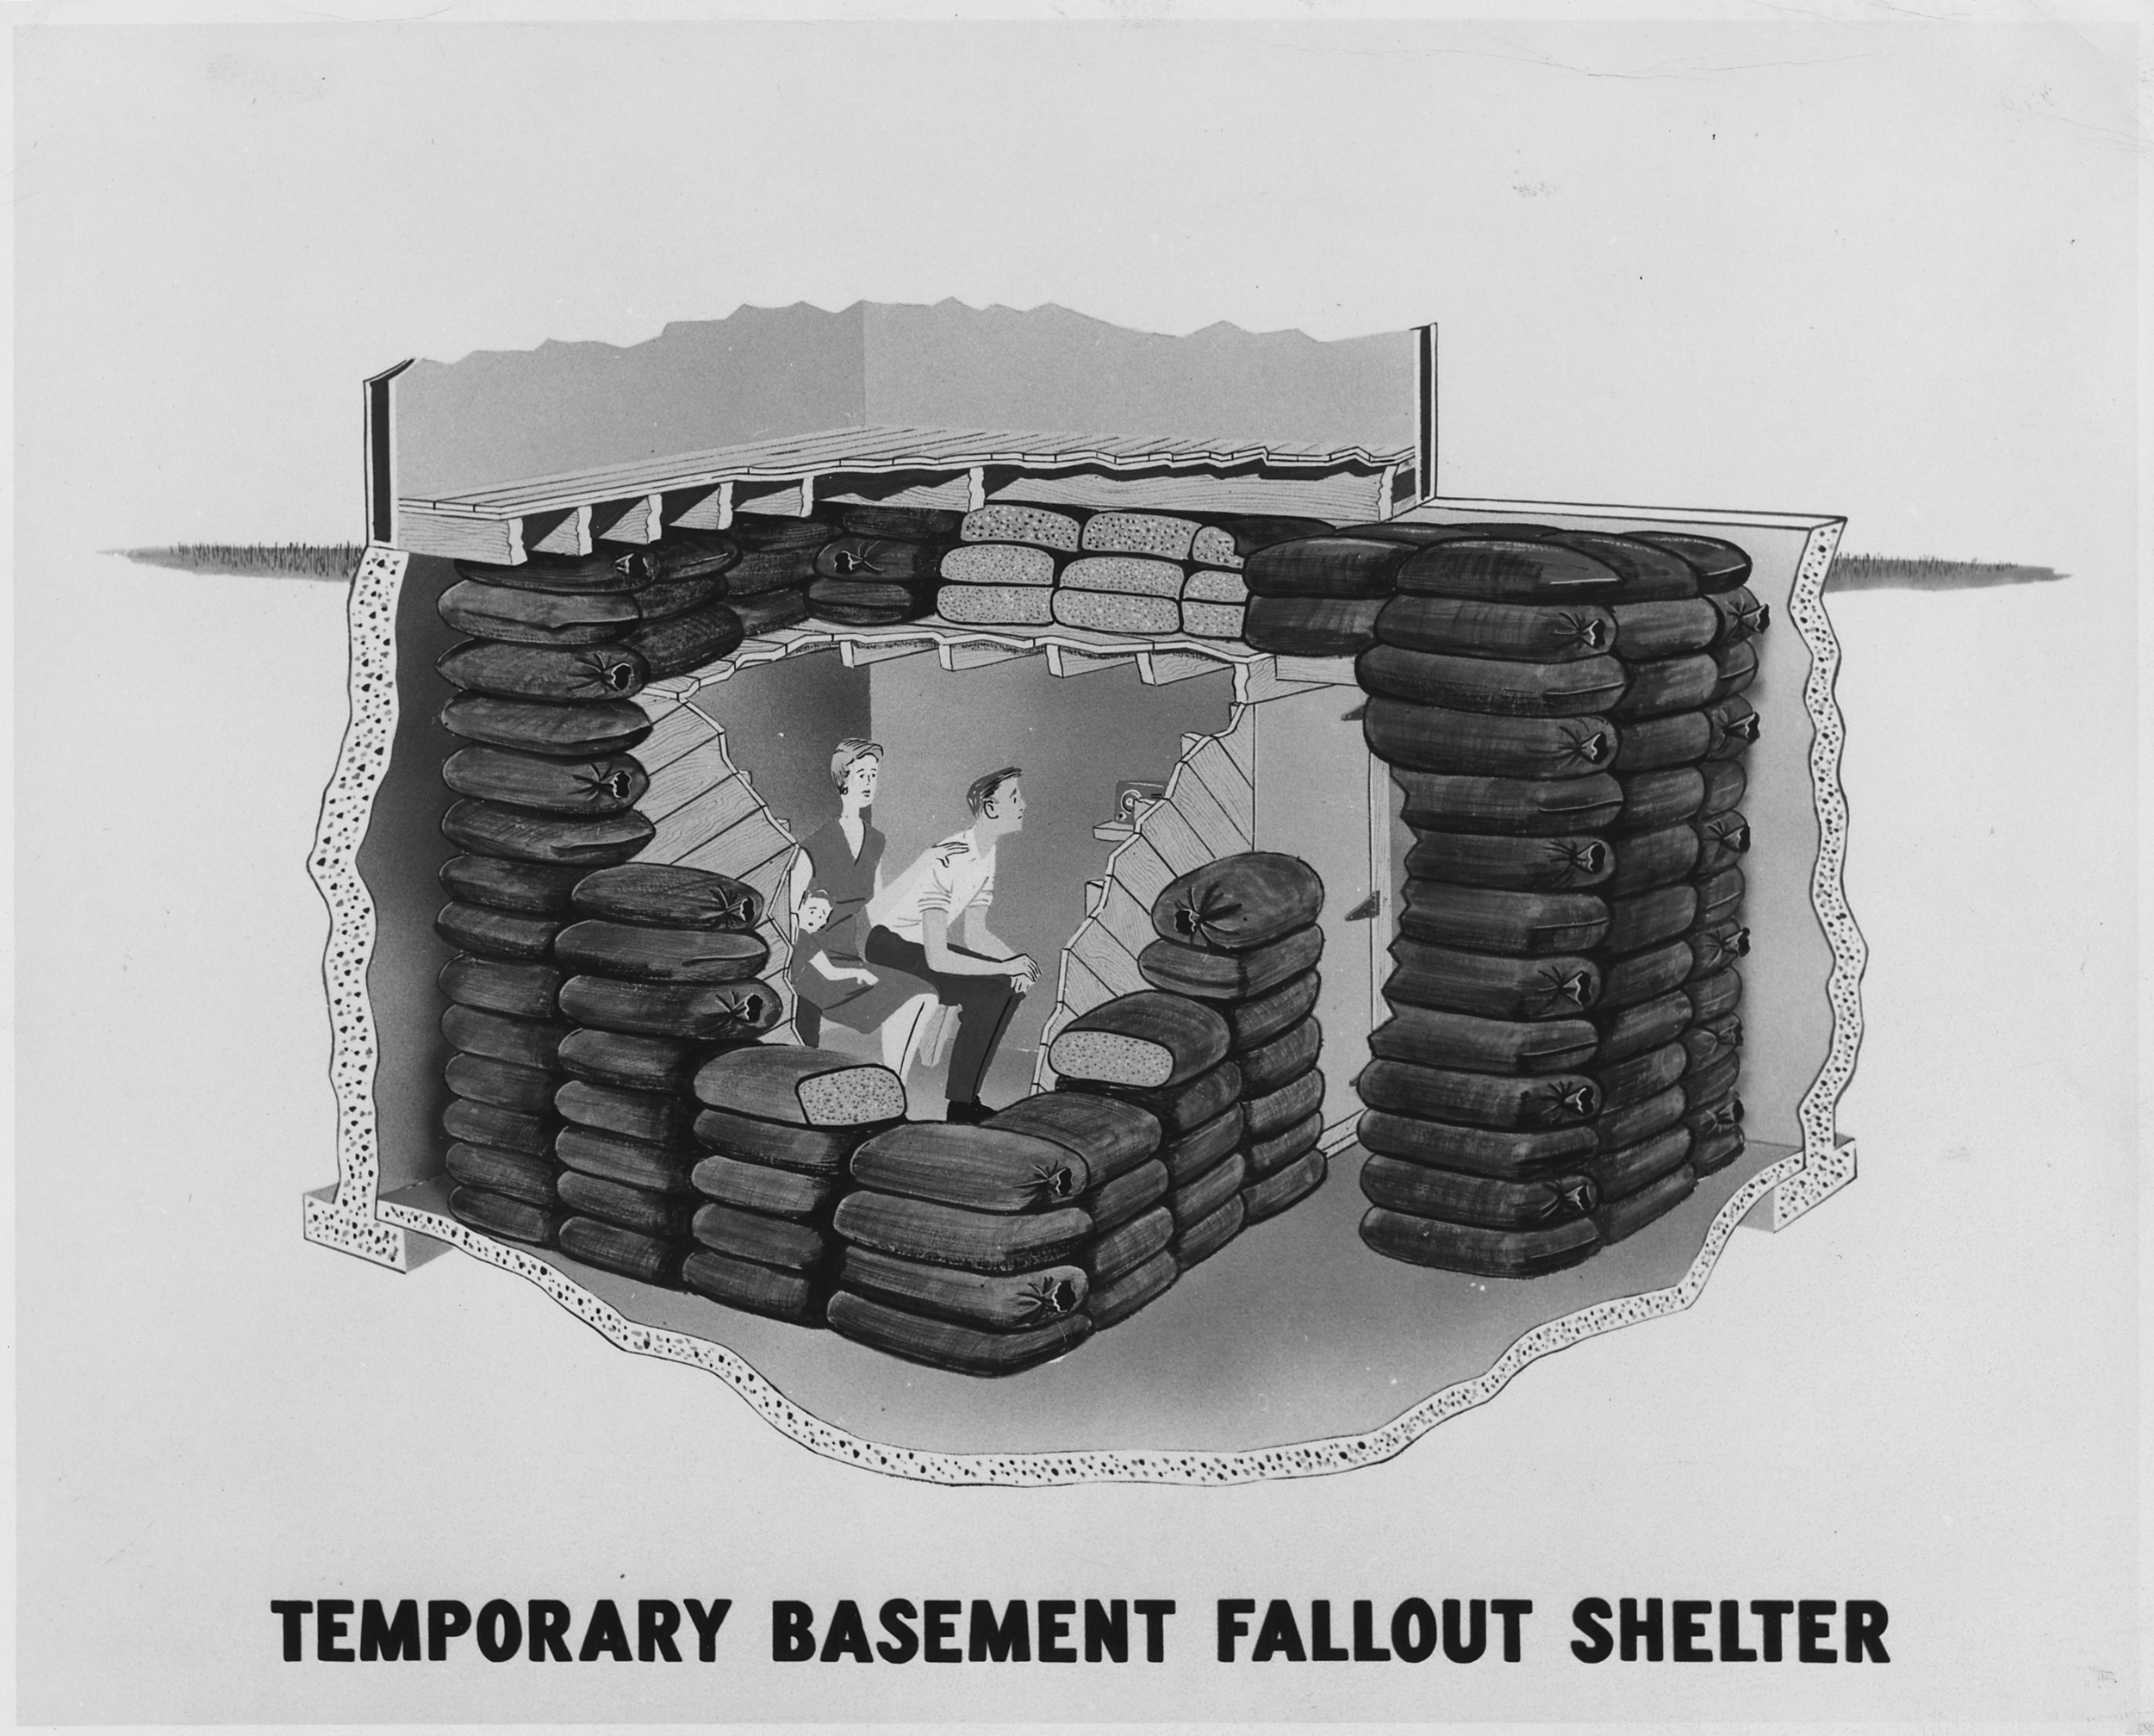 ca.1957, Temporary Basement Fallout Shelter, [artist's rendition.], Record Group 311: Records of the Federal Emergency Management Agency, 1956 - 2008, Photographs of Civil Defense Personnel and Activities, compiled 1964 - 1986